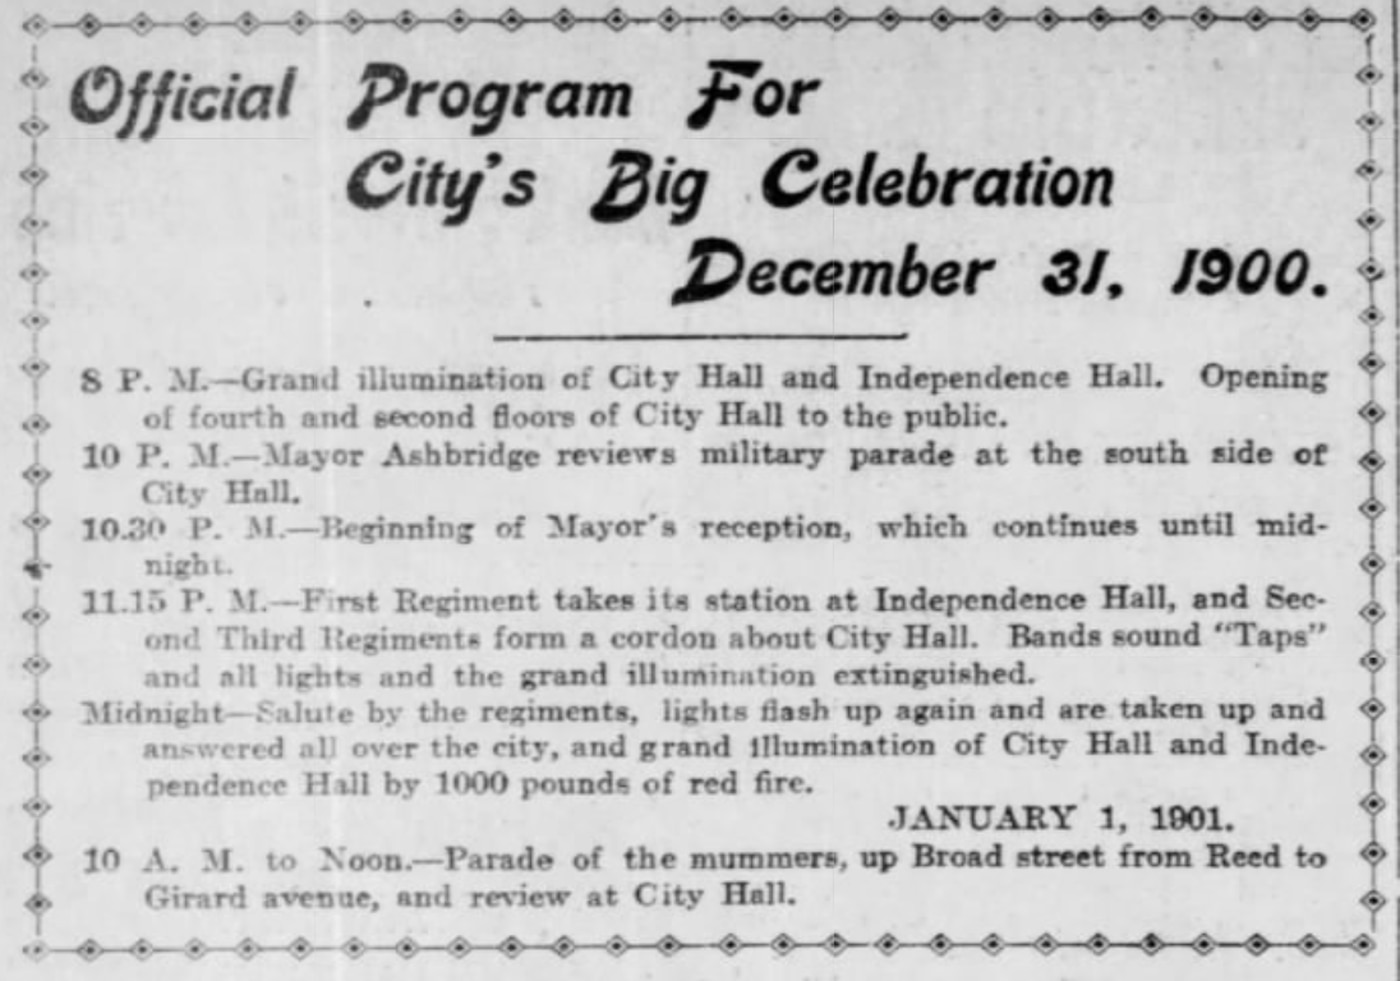 Inquirer archive of the city's plans for New Year's celebrations, published Dec. 22, 1900.